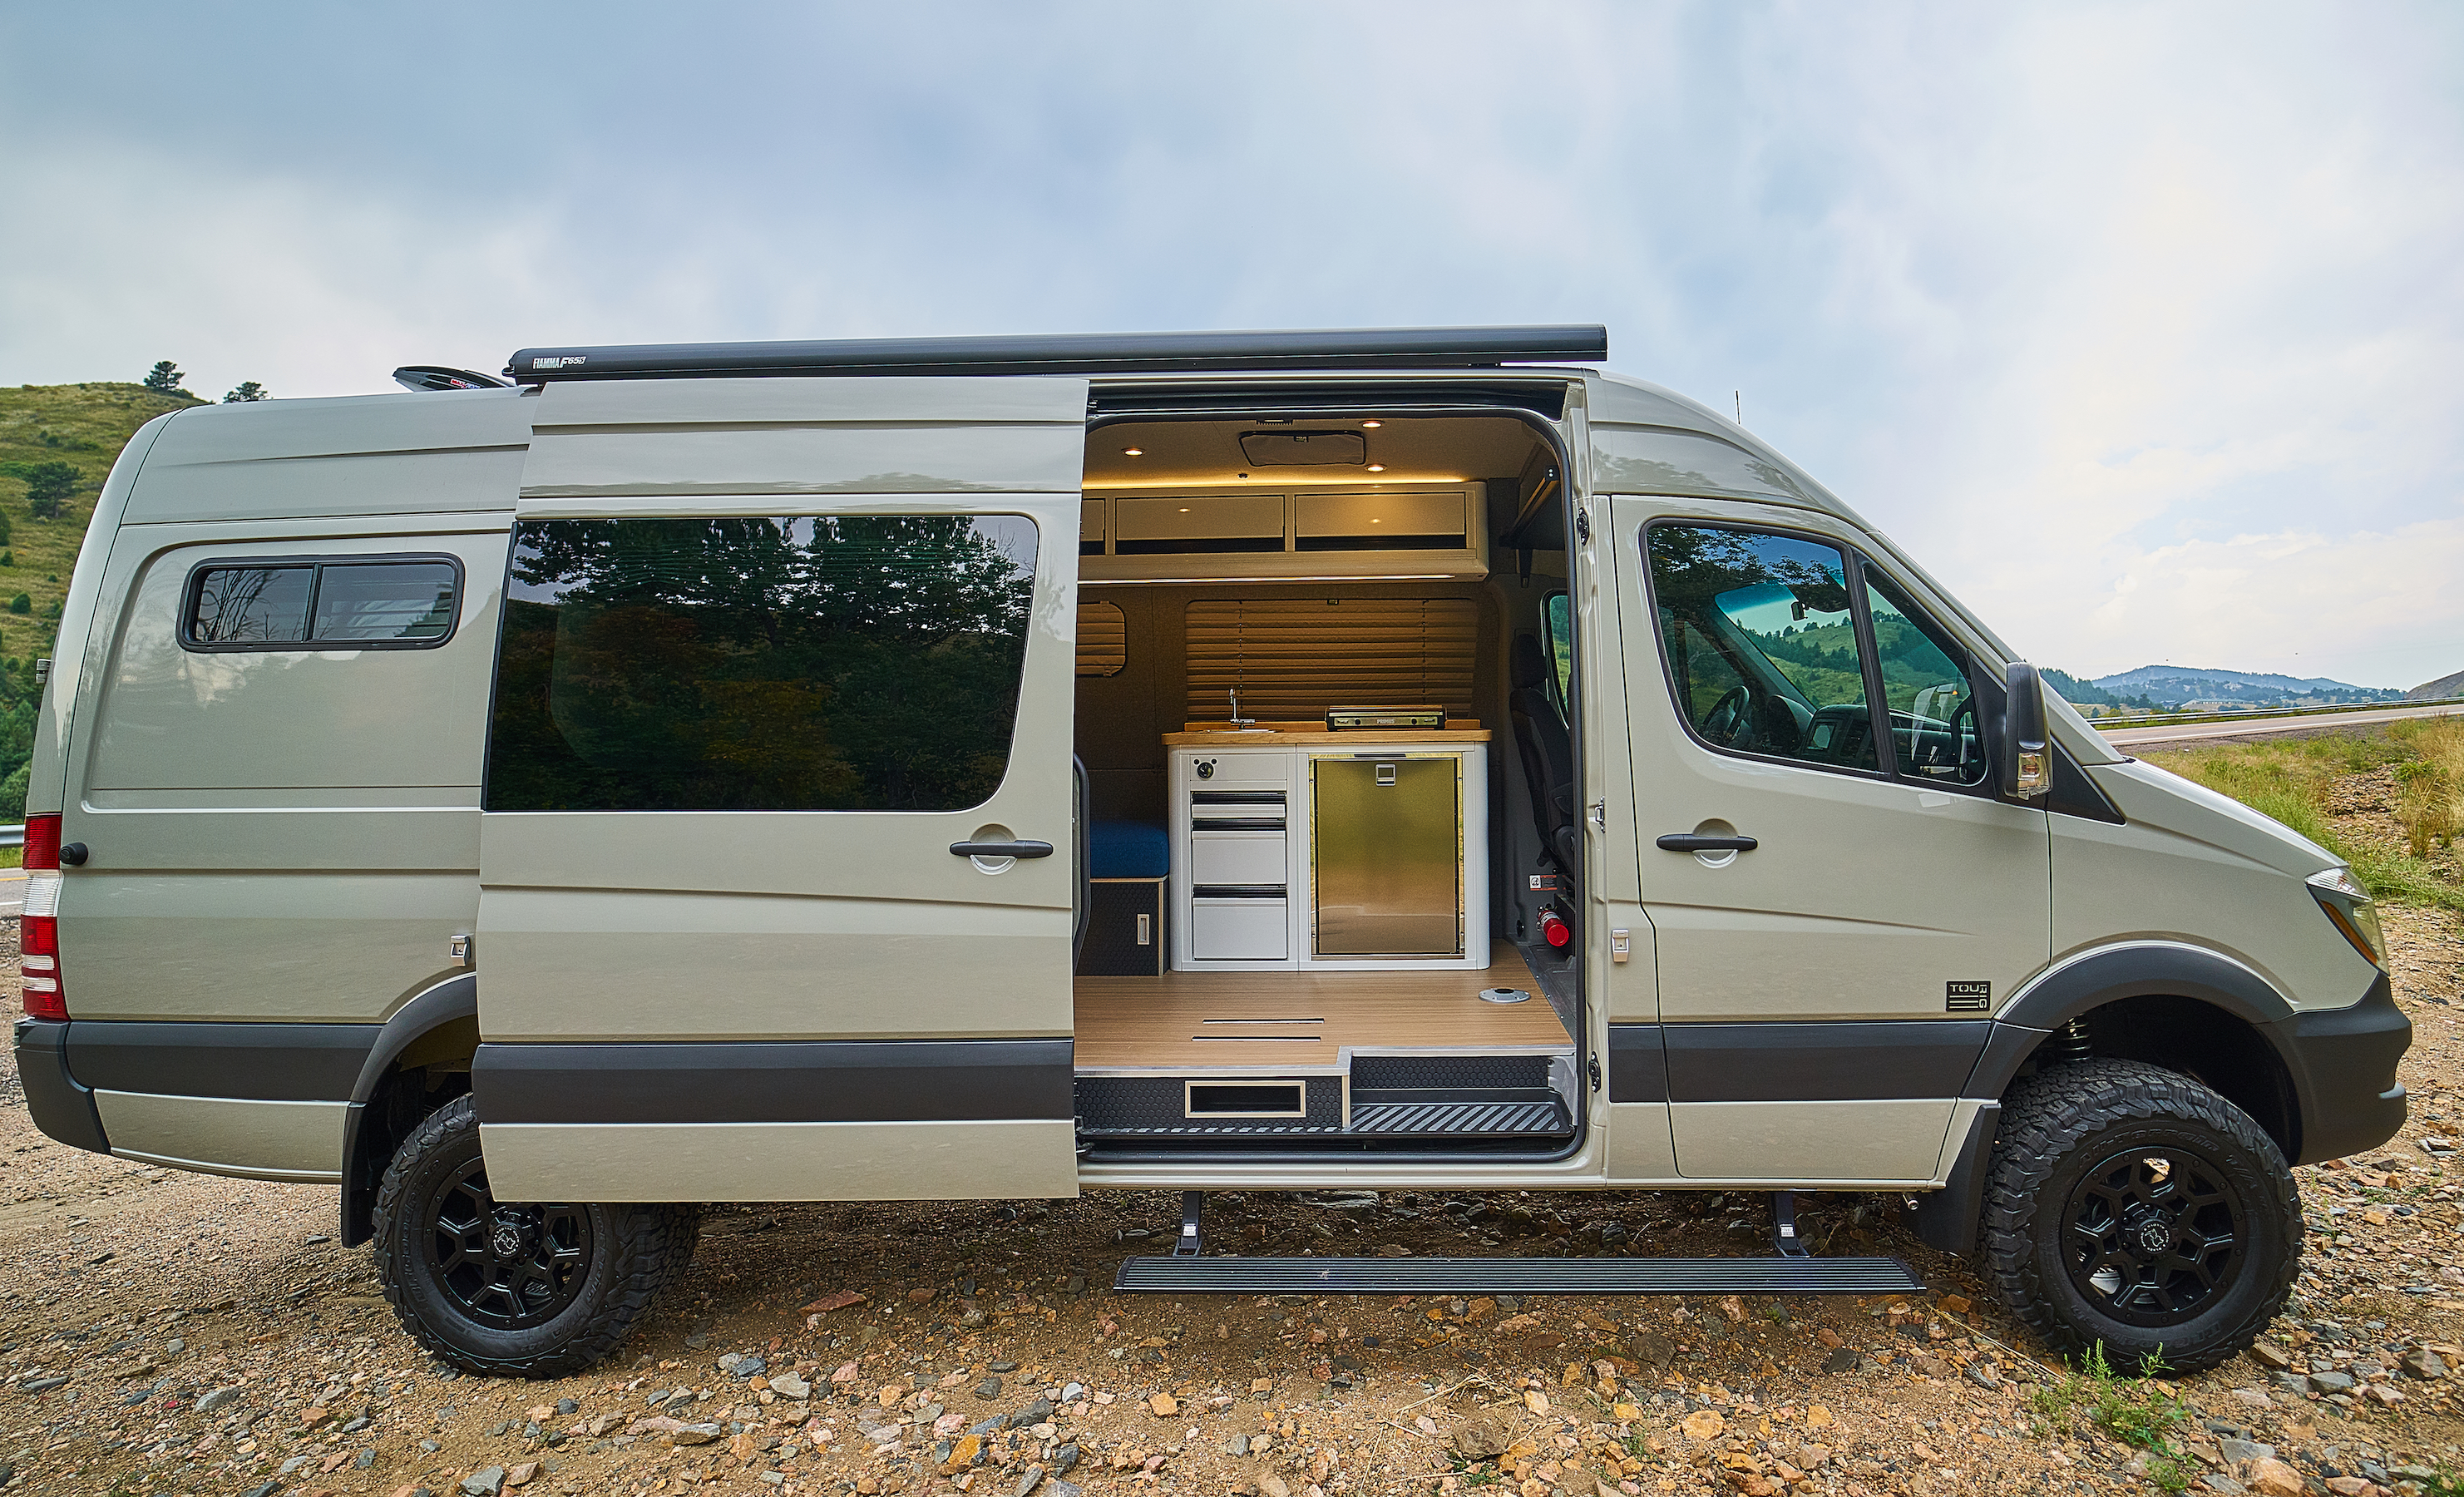 Sleek camper van sleeps two with space for bikes